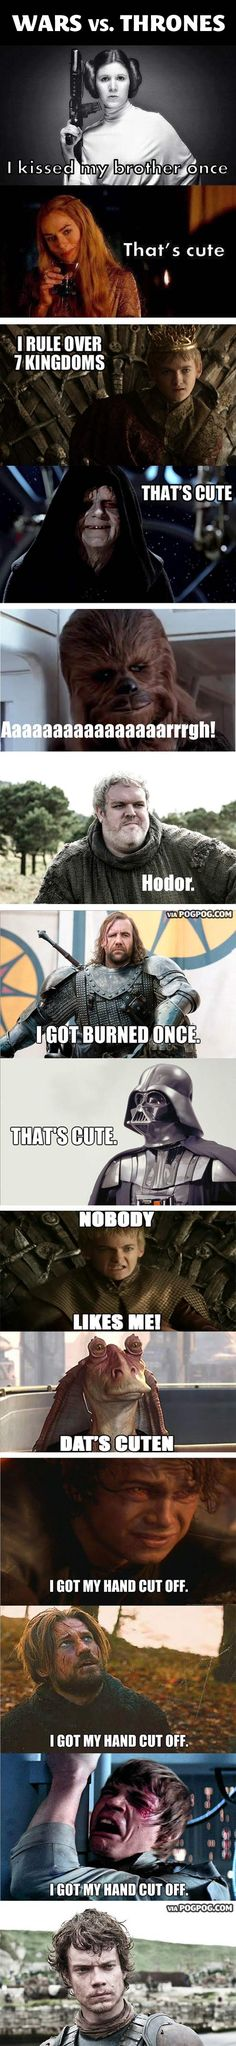 Best Star Wars and Game of Thrones mashup ever!